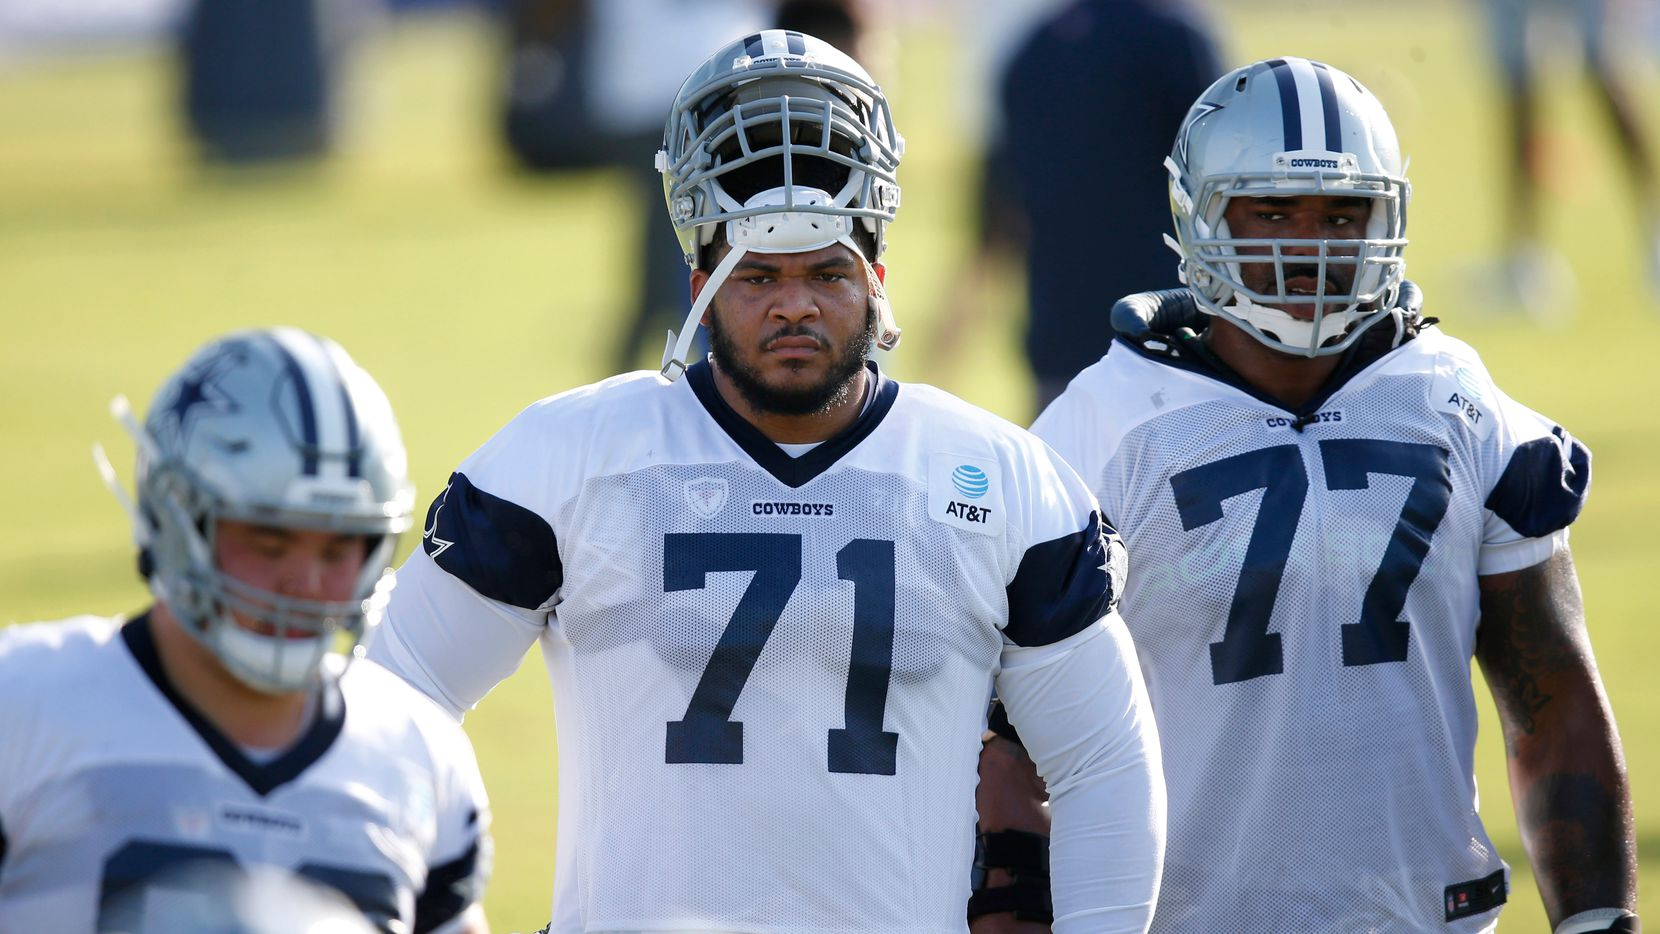 Cowboys offensive tackles La'el Collins (71) and Tyron Smith (77) watch a drill in progress during the first day of training camp at The Star in Frisco on Friday, Aug. 14, 2020.